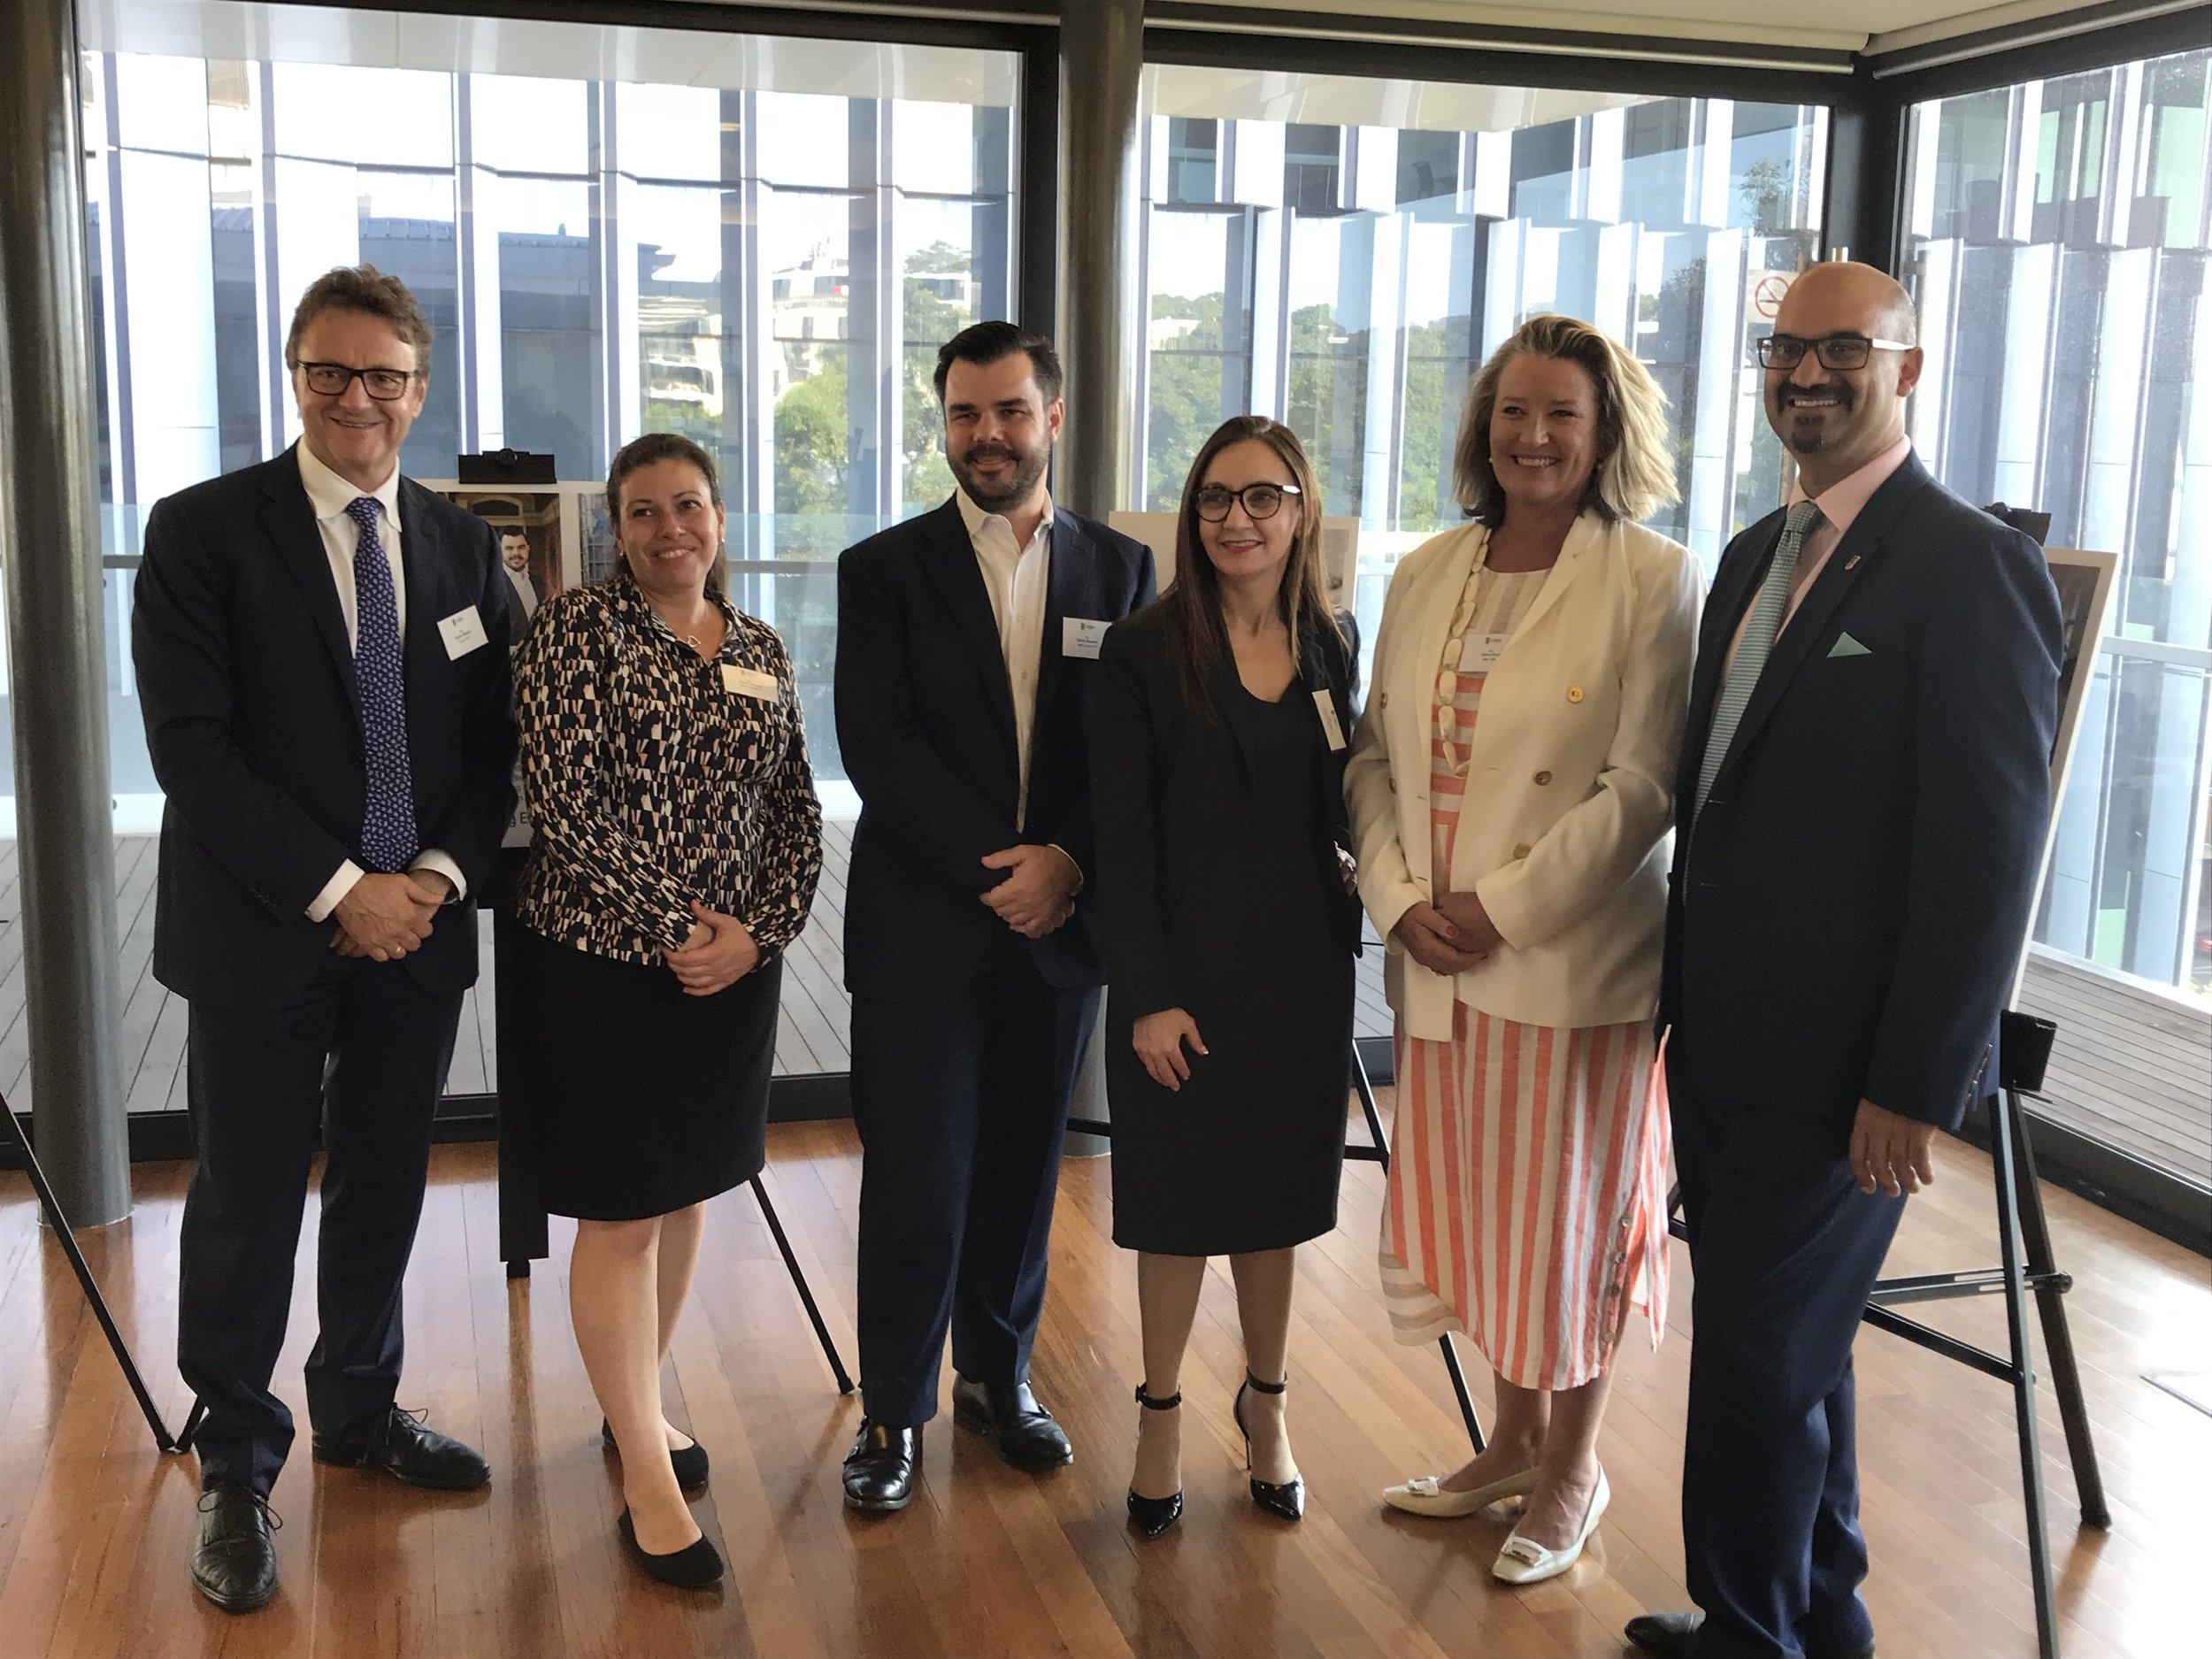 Left to right: James Stevens - Founder Roses Only, Leanne Howard - Business partner UNSW, Danny Kapustin - CEO Foresight, Julie-Anne Mizzi - AMP, Arahni Sont - Centro ASSIST, Lali Wiratunga - Westpac's Davidson Institute